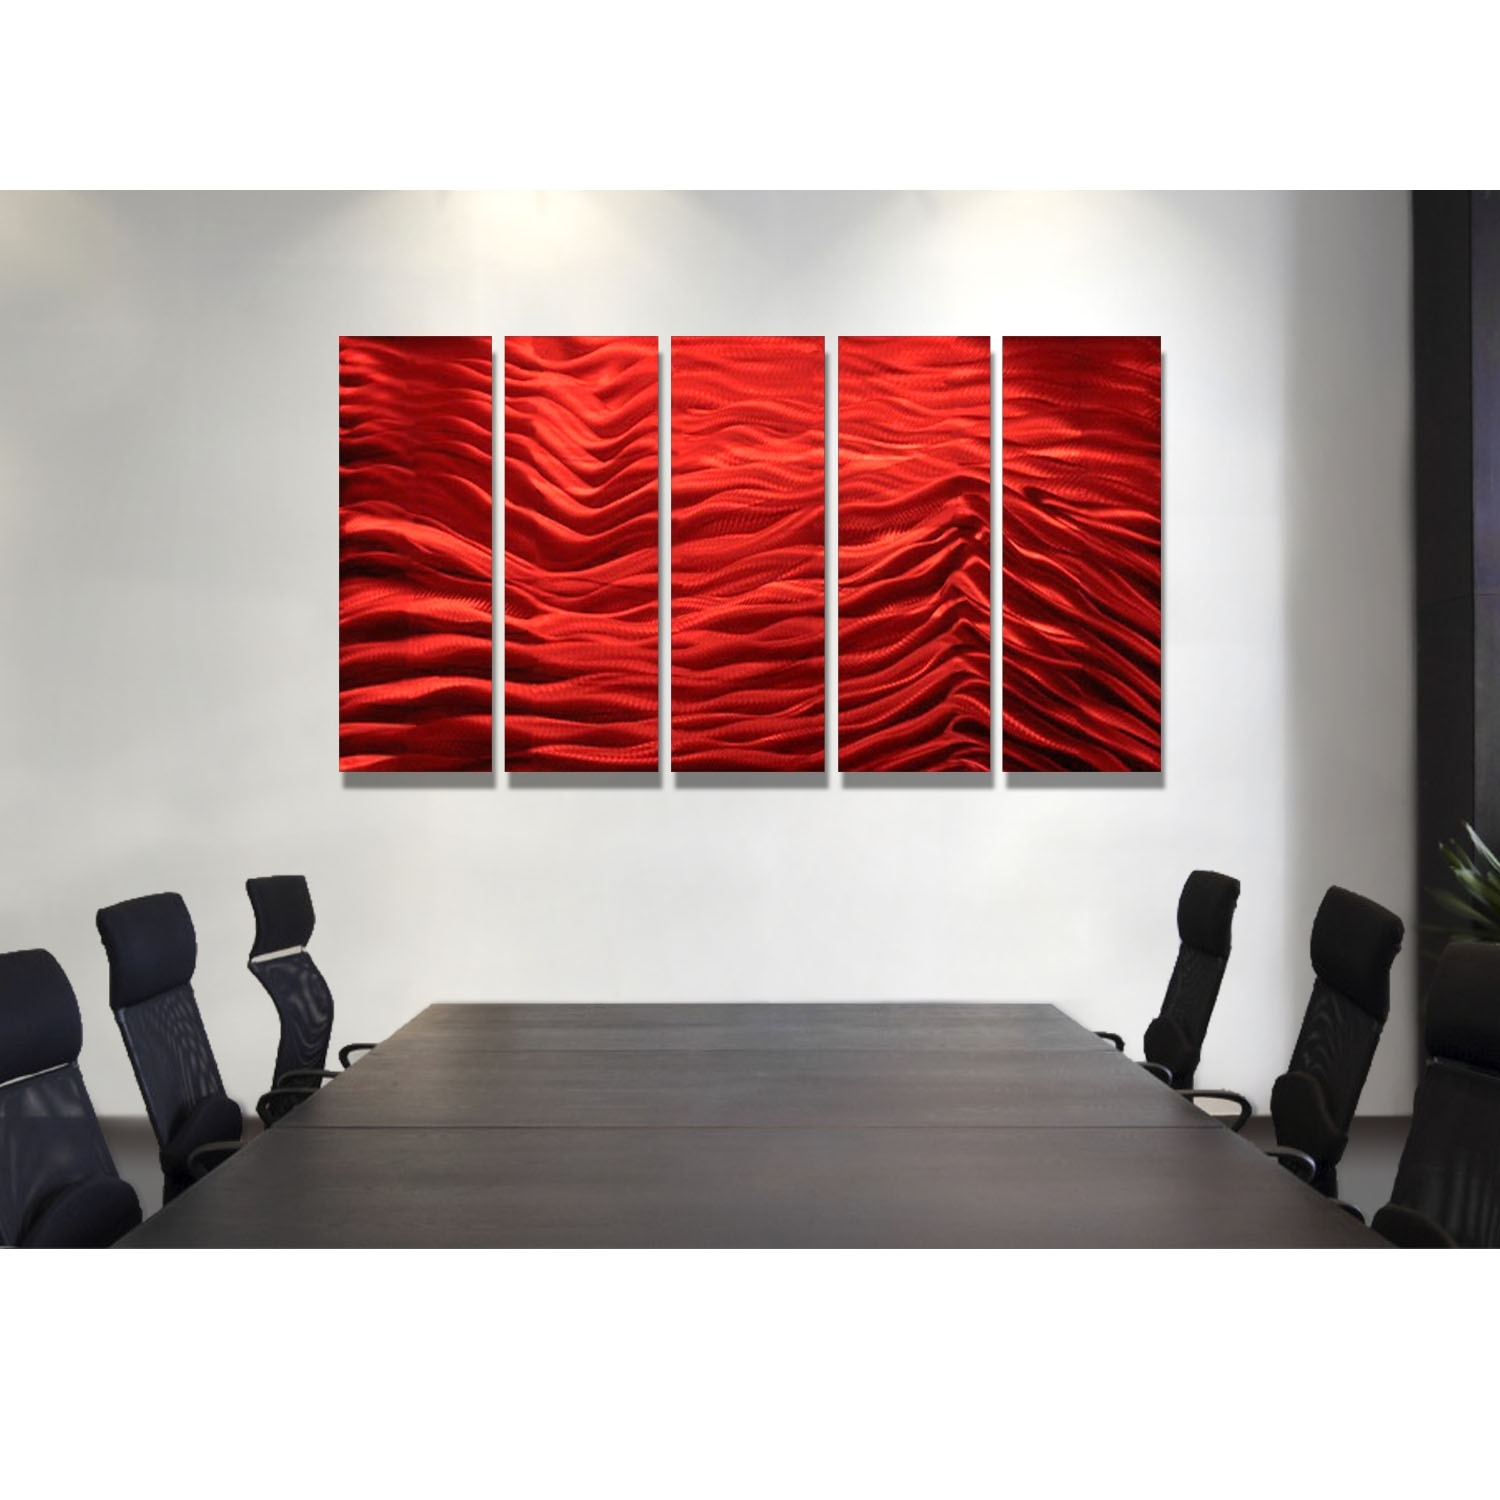 Red Inertia - Red Metal Wall Art - 5 Panel Wall Décorjon Allen throughout 5 Panel Wall Art (Image 16 of 20)